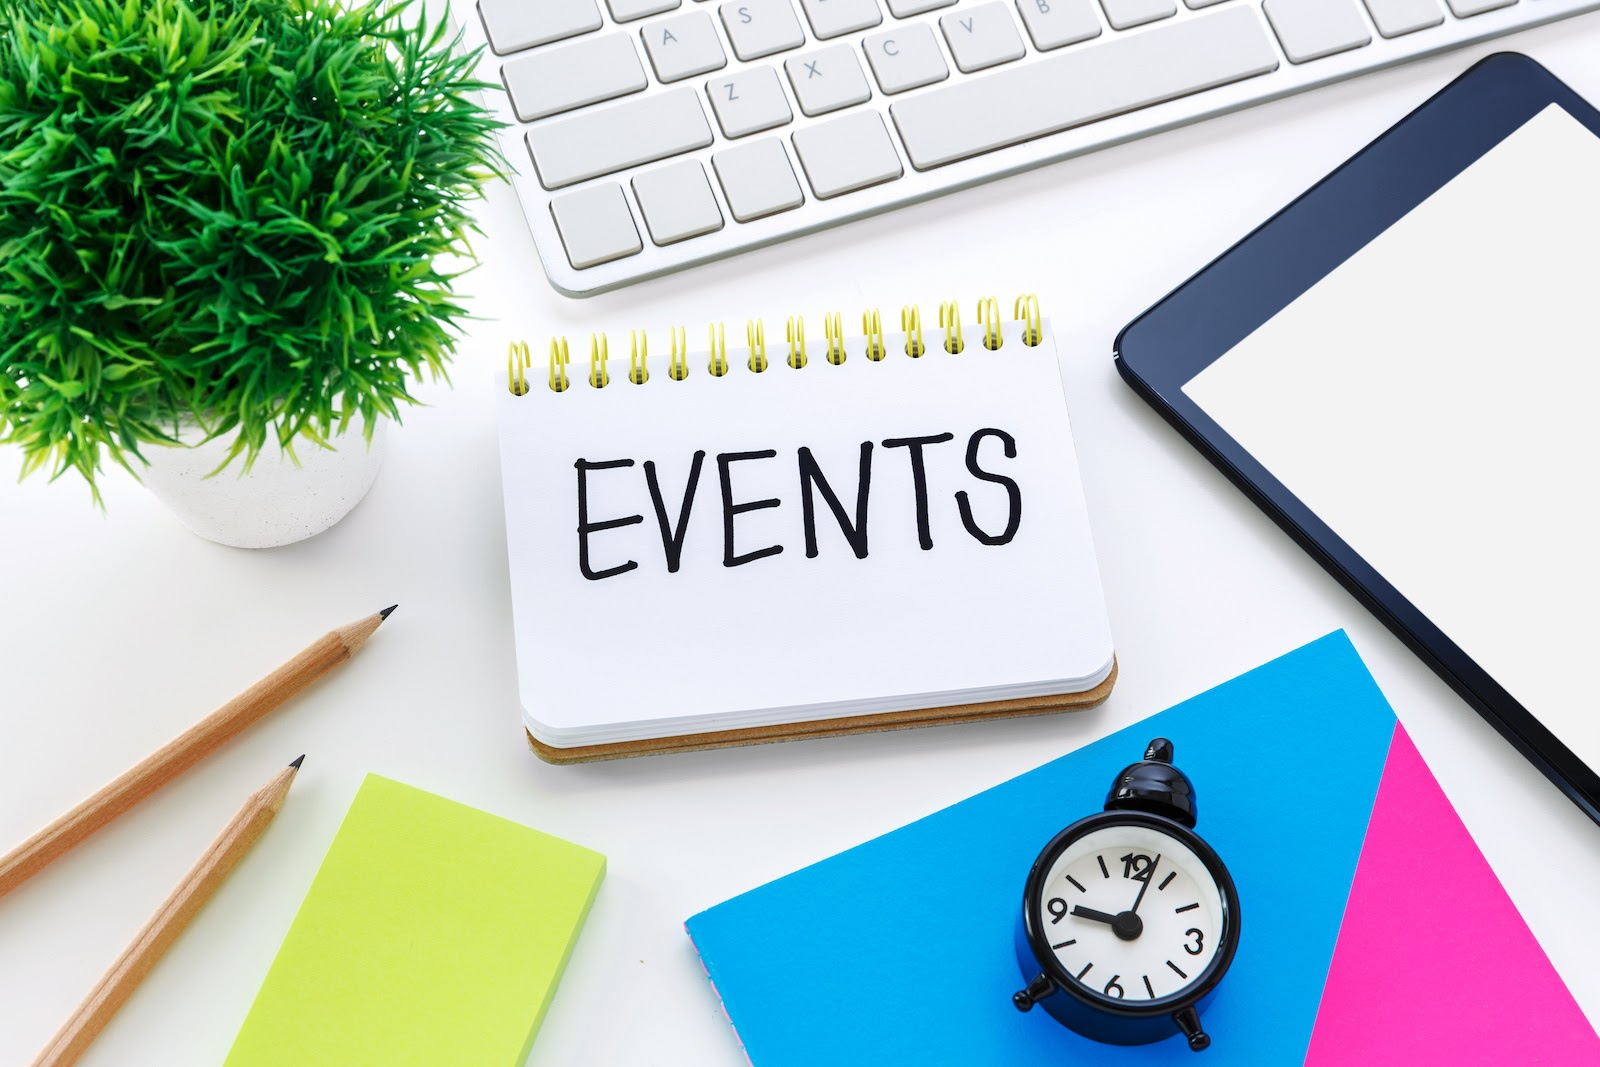 Note book, pencils, keyboard, clock, and other item you need to make an event planning checklist